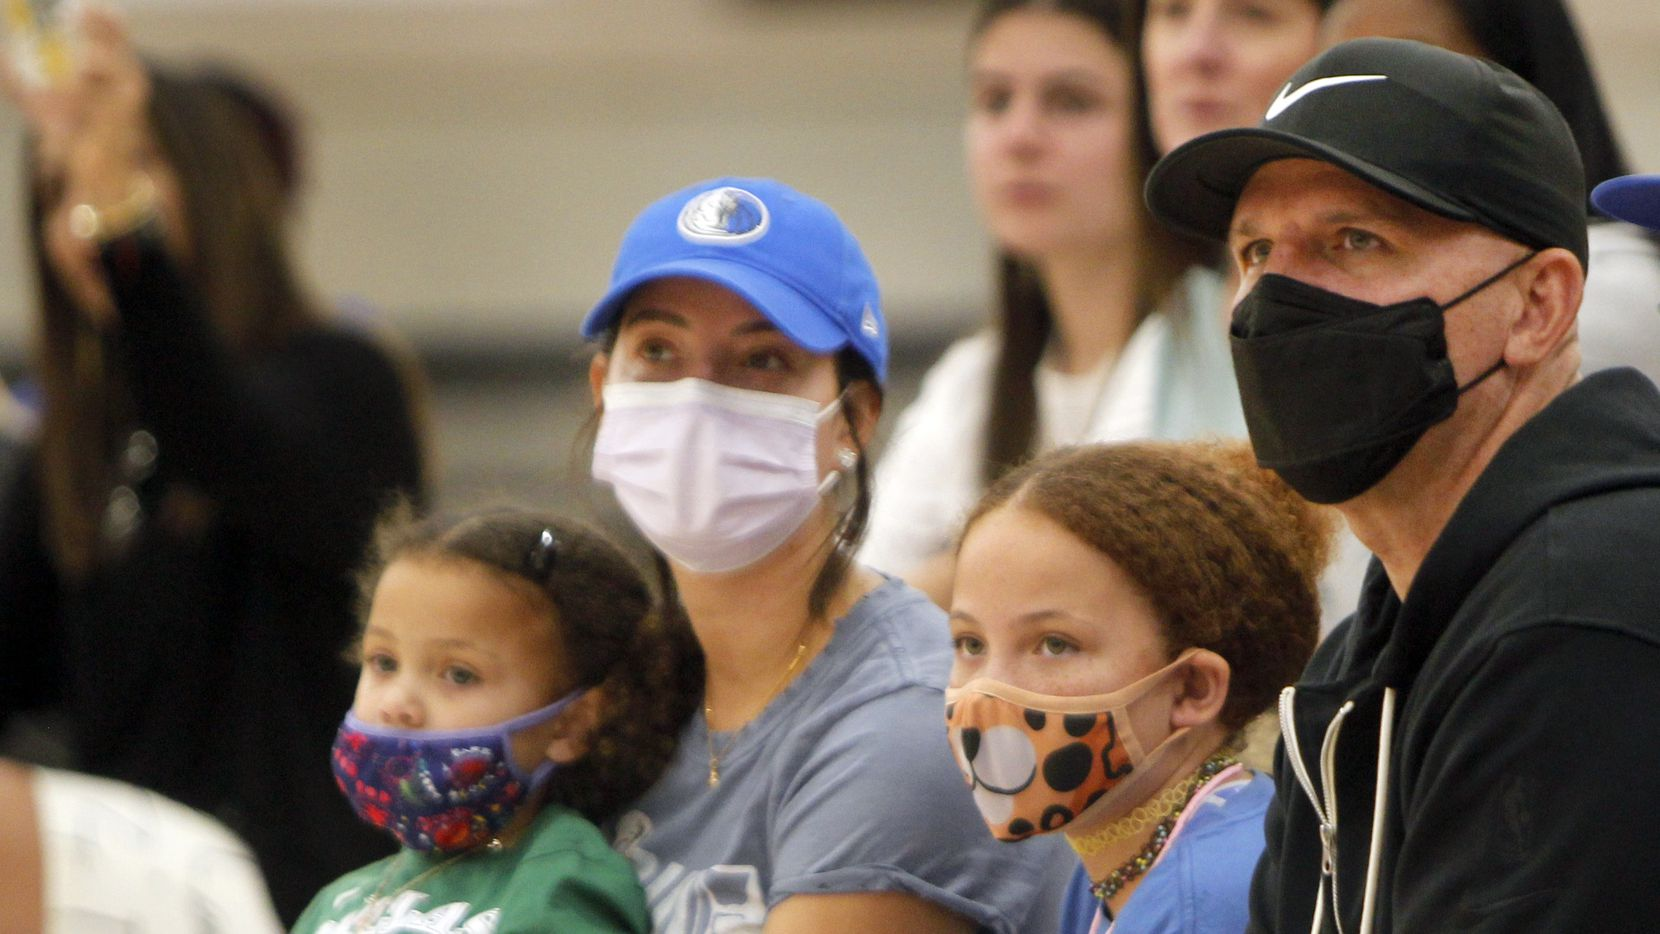 Dallas Mavericks head coach Jason Kidd, right, watches alongside his family in attendance for a girls basketball game featuring Kidd Select, a team the family sponsors. Pictured to Kidd's right are daughter Noah, 9; wife Porschla and daughter Cooper, 3. The basketball tournament was held at Fieldhouse USA in Mansfield on August 21, 2021.